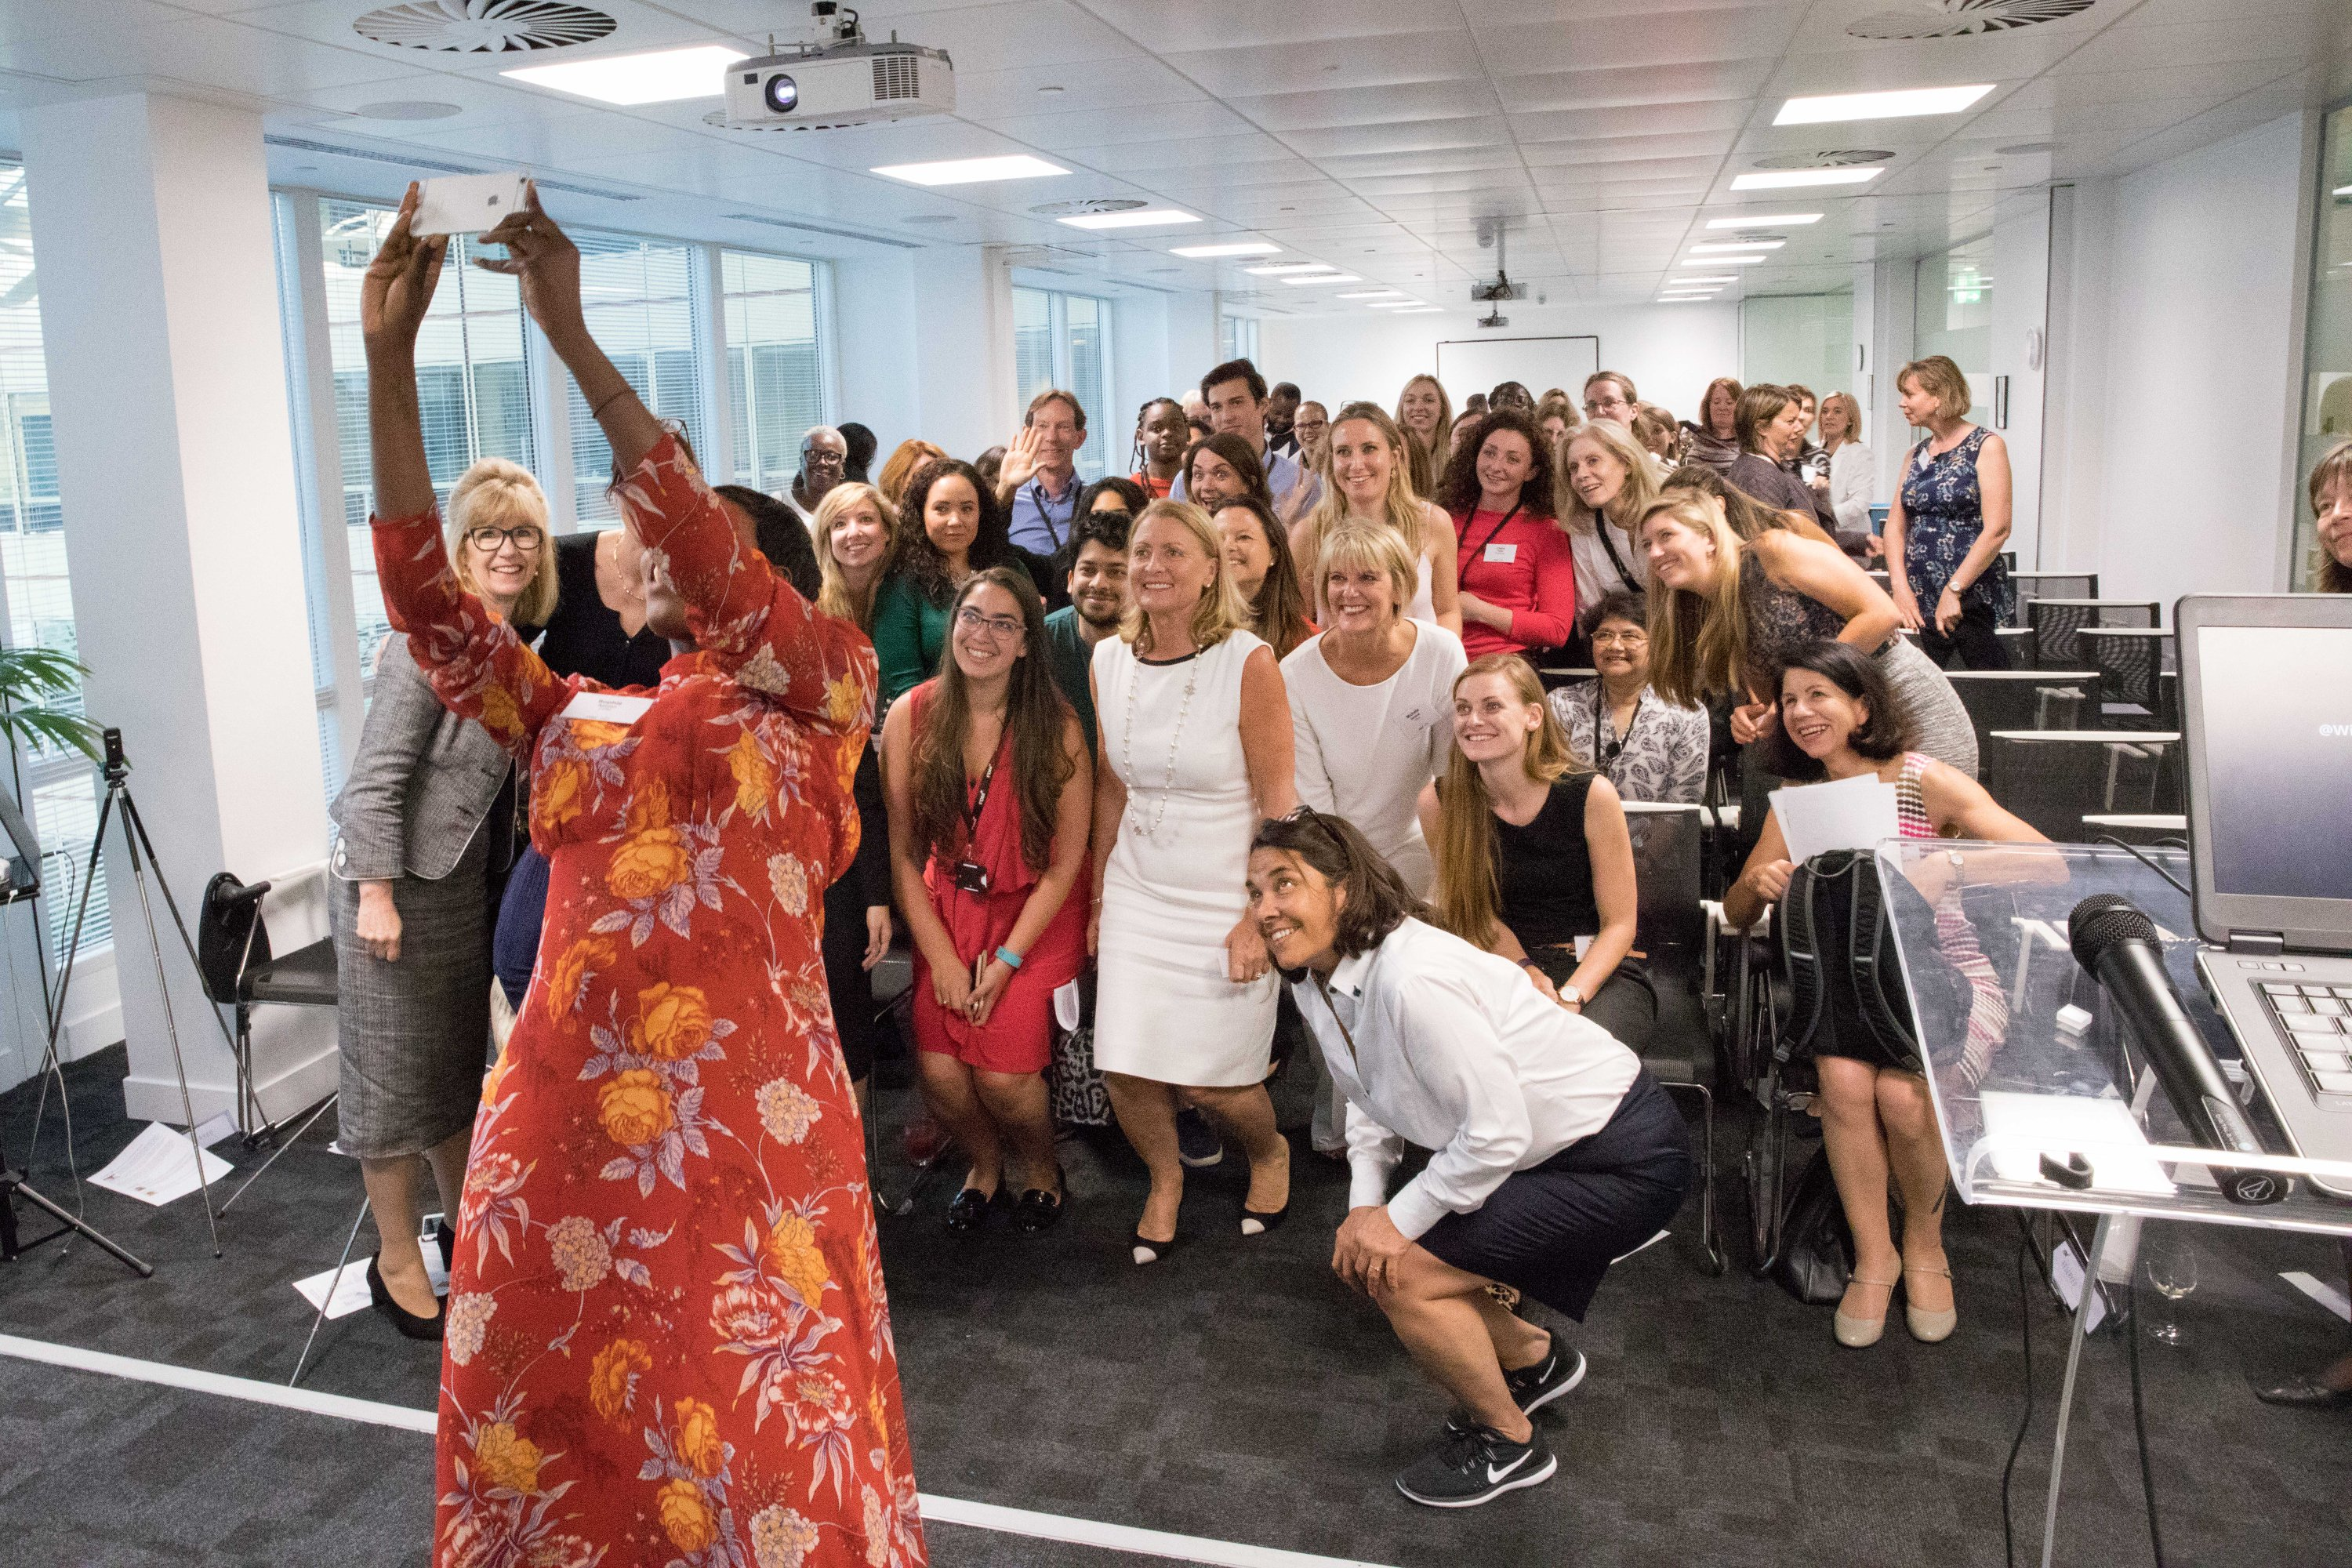 A large group of women in IT and telecoms posing for a group selfie